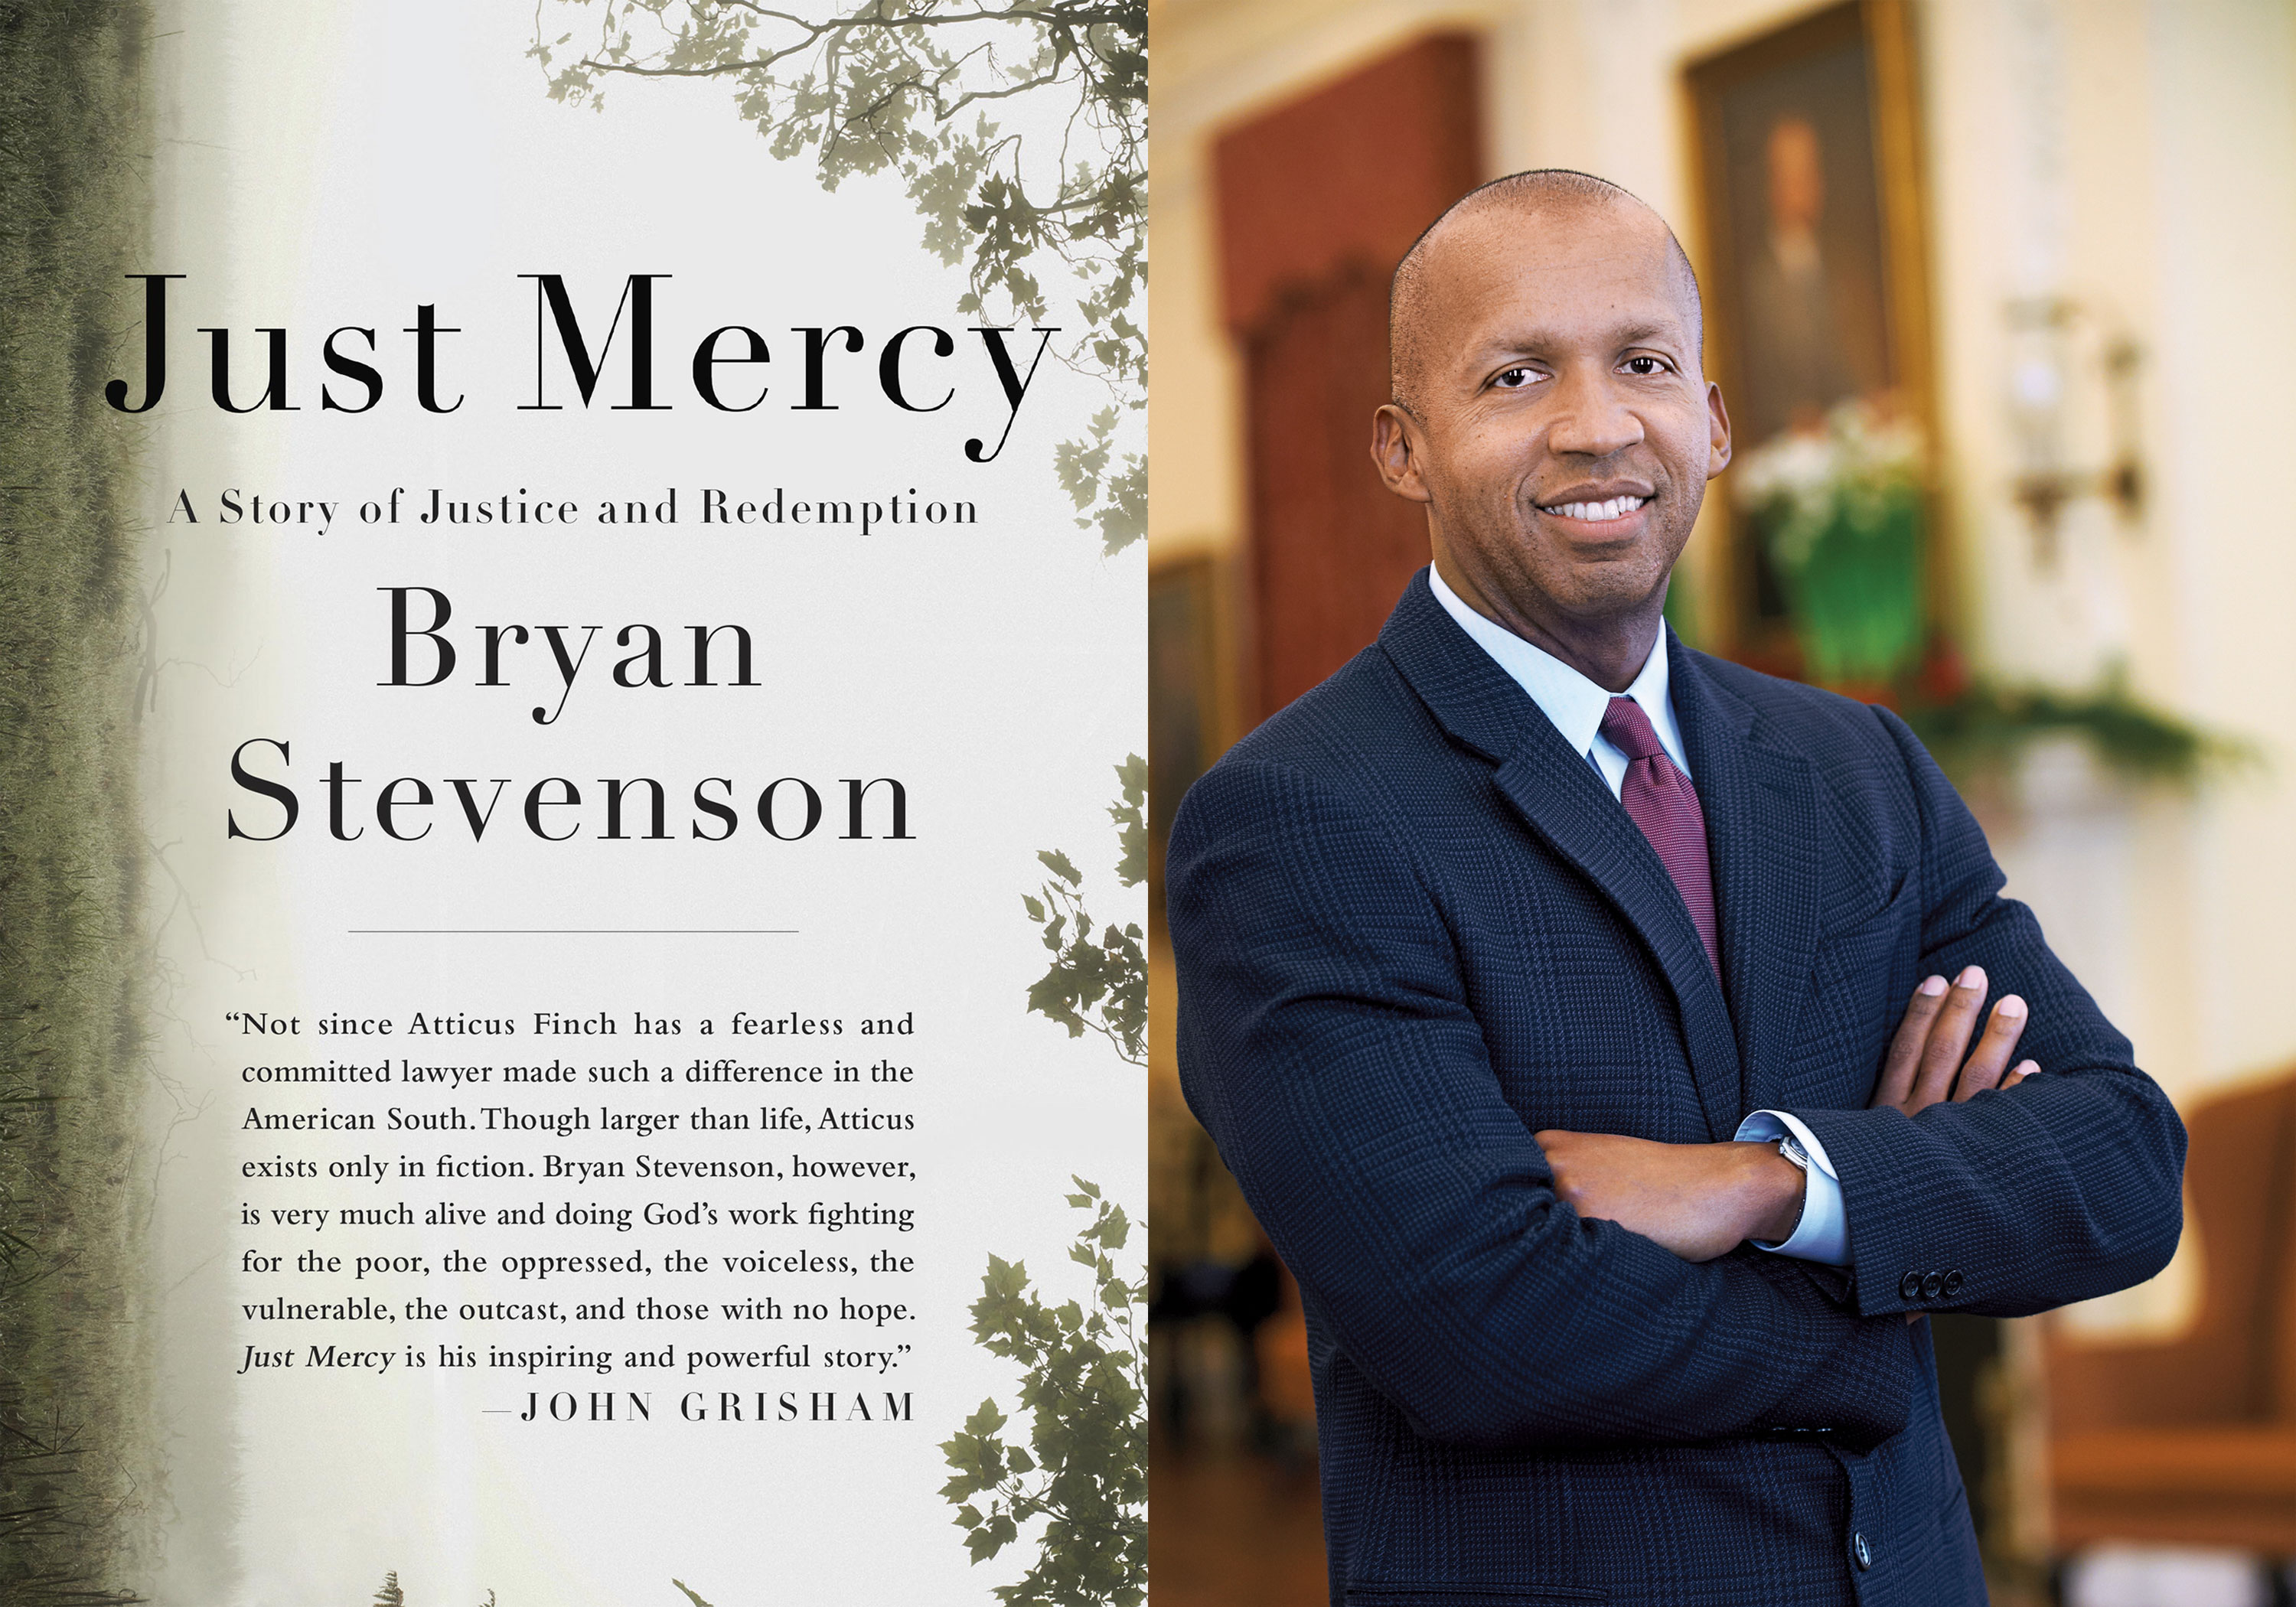 Bryan Stevenson – Just Mercy: A Story of Justice and Redemption - Roosevelt House Public Policy Institute at Hunter College